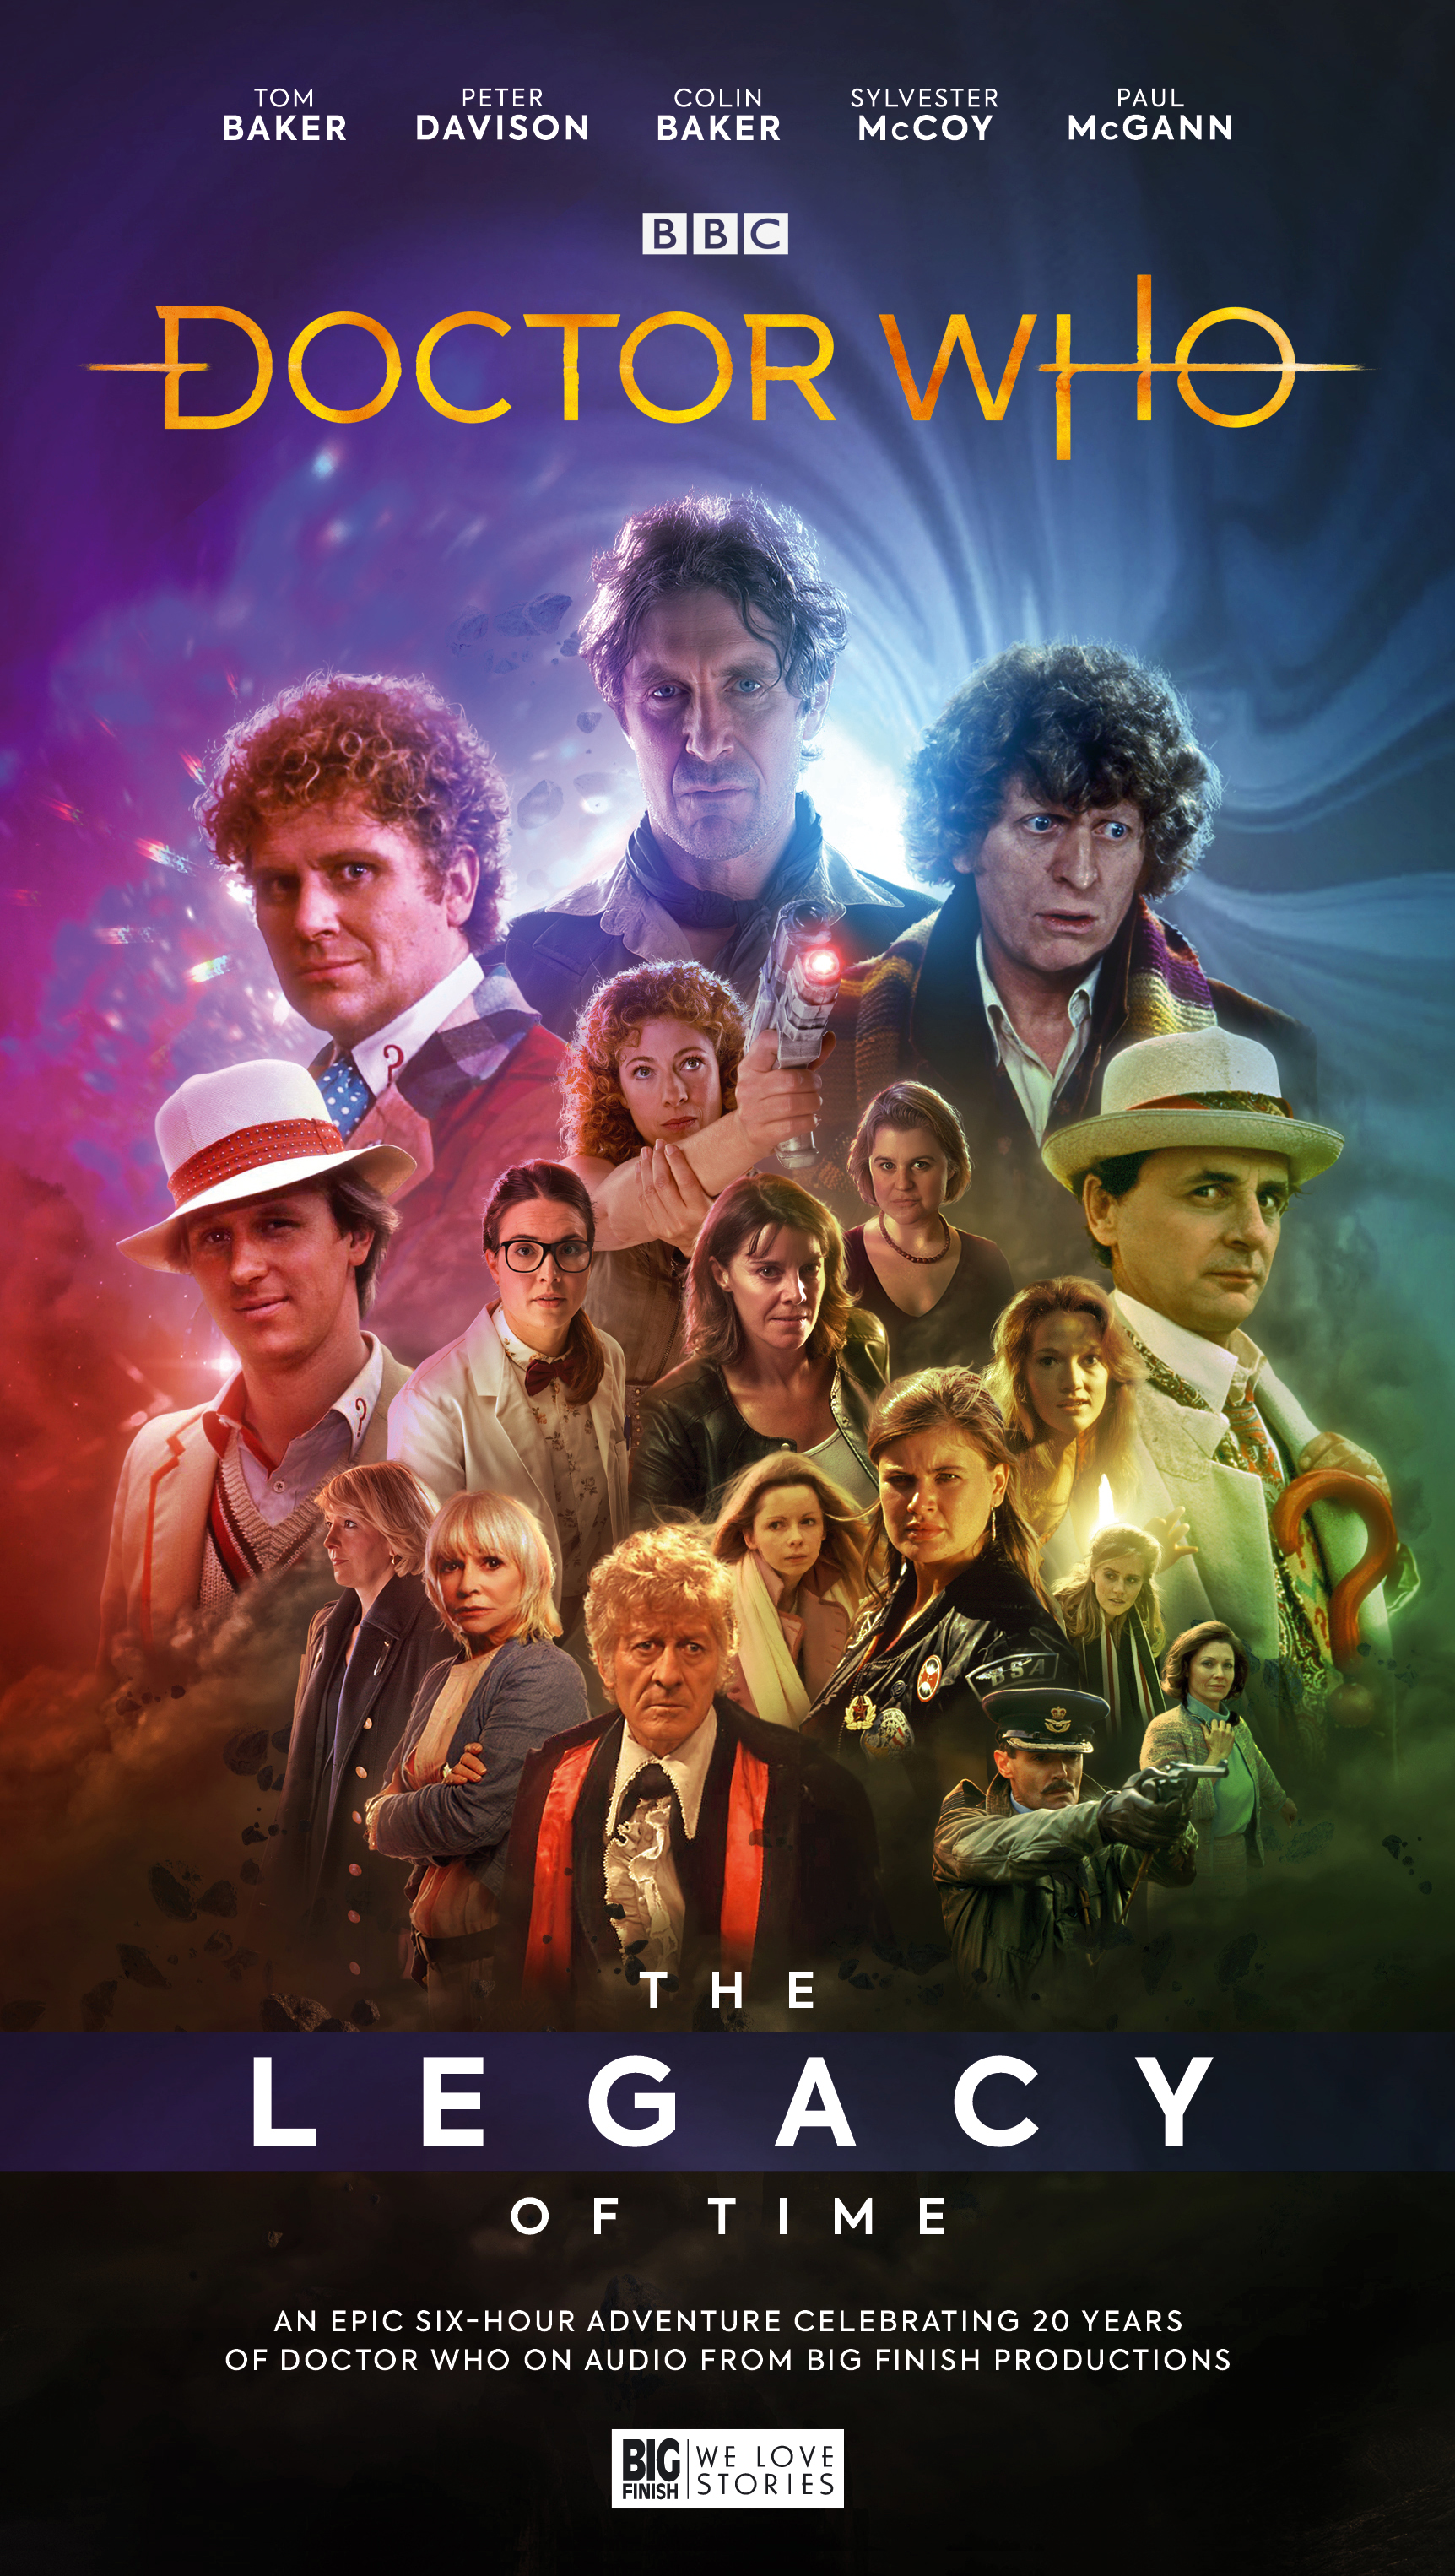 The Legacy of Time (Credit: Big Finish)